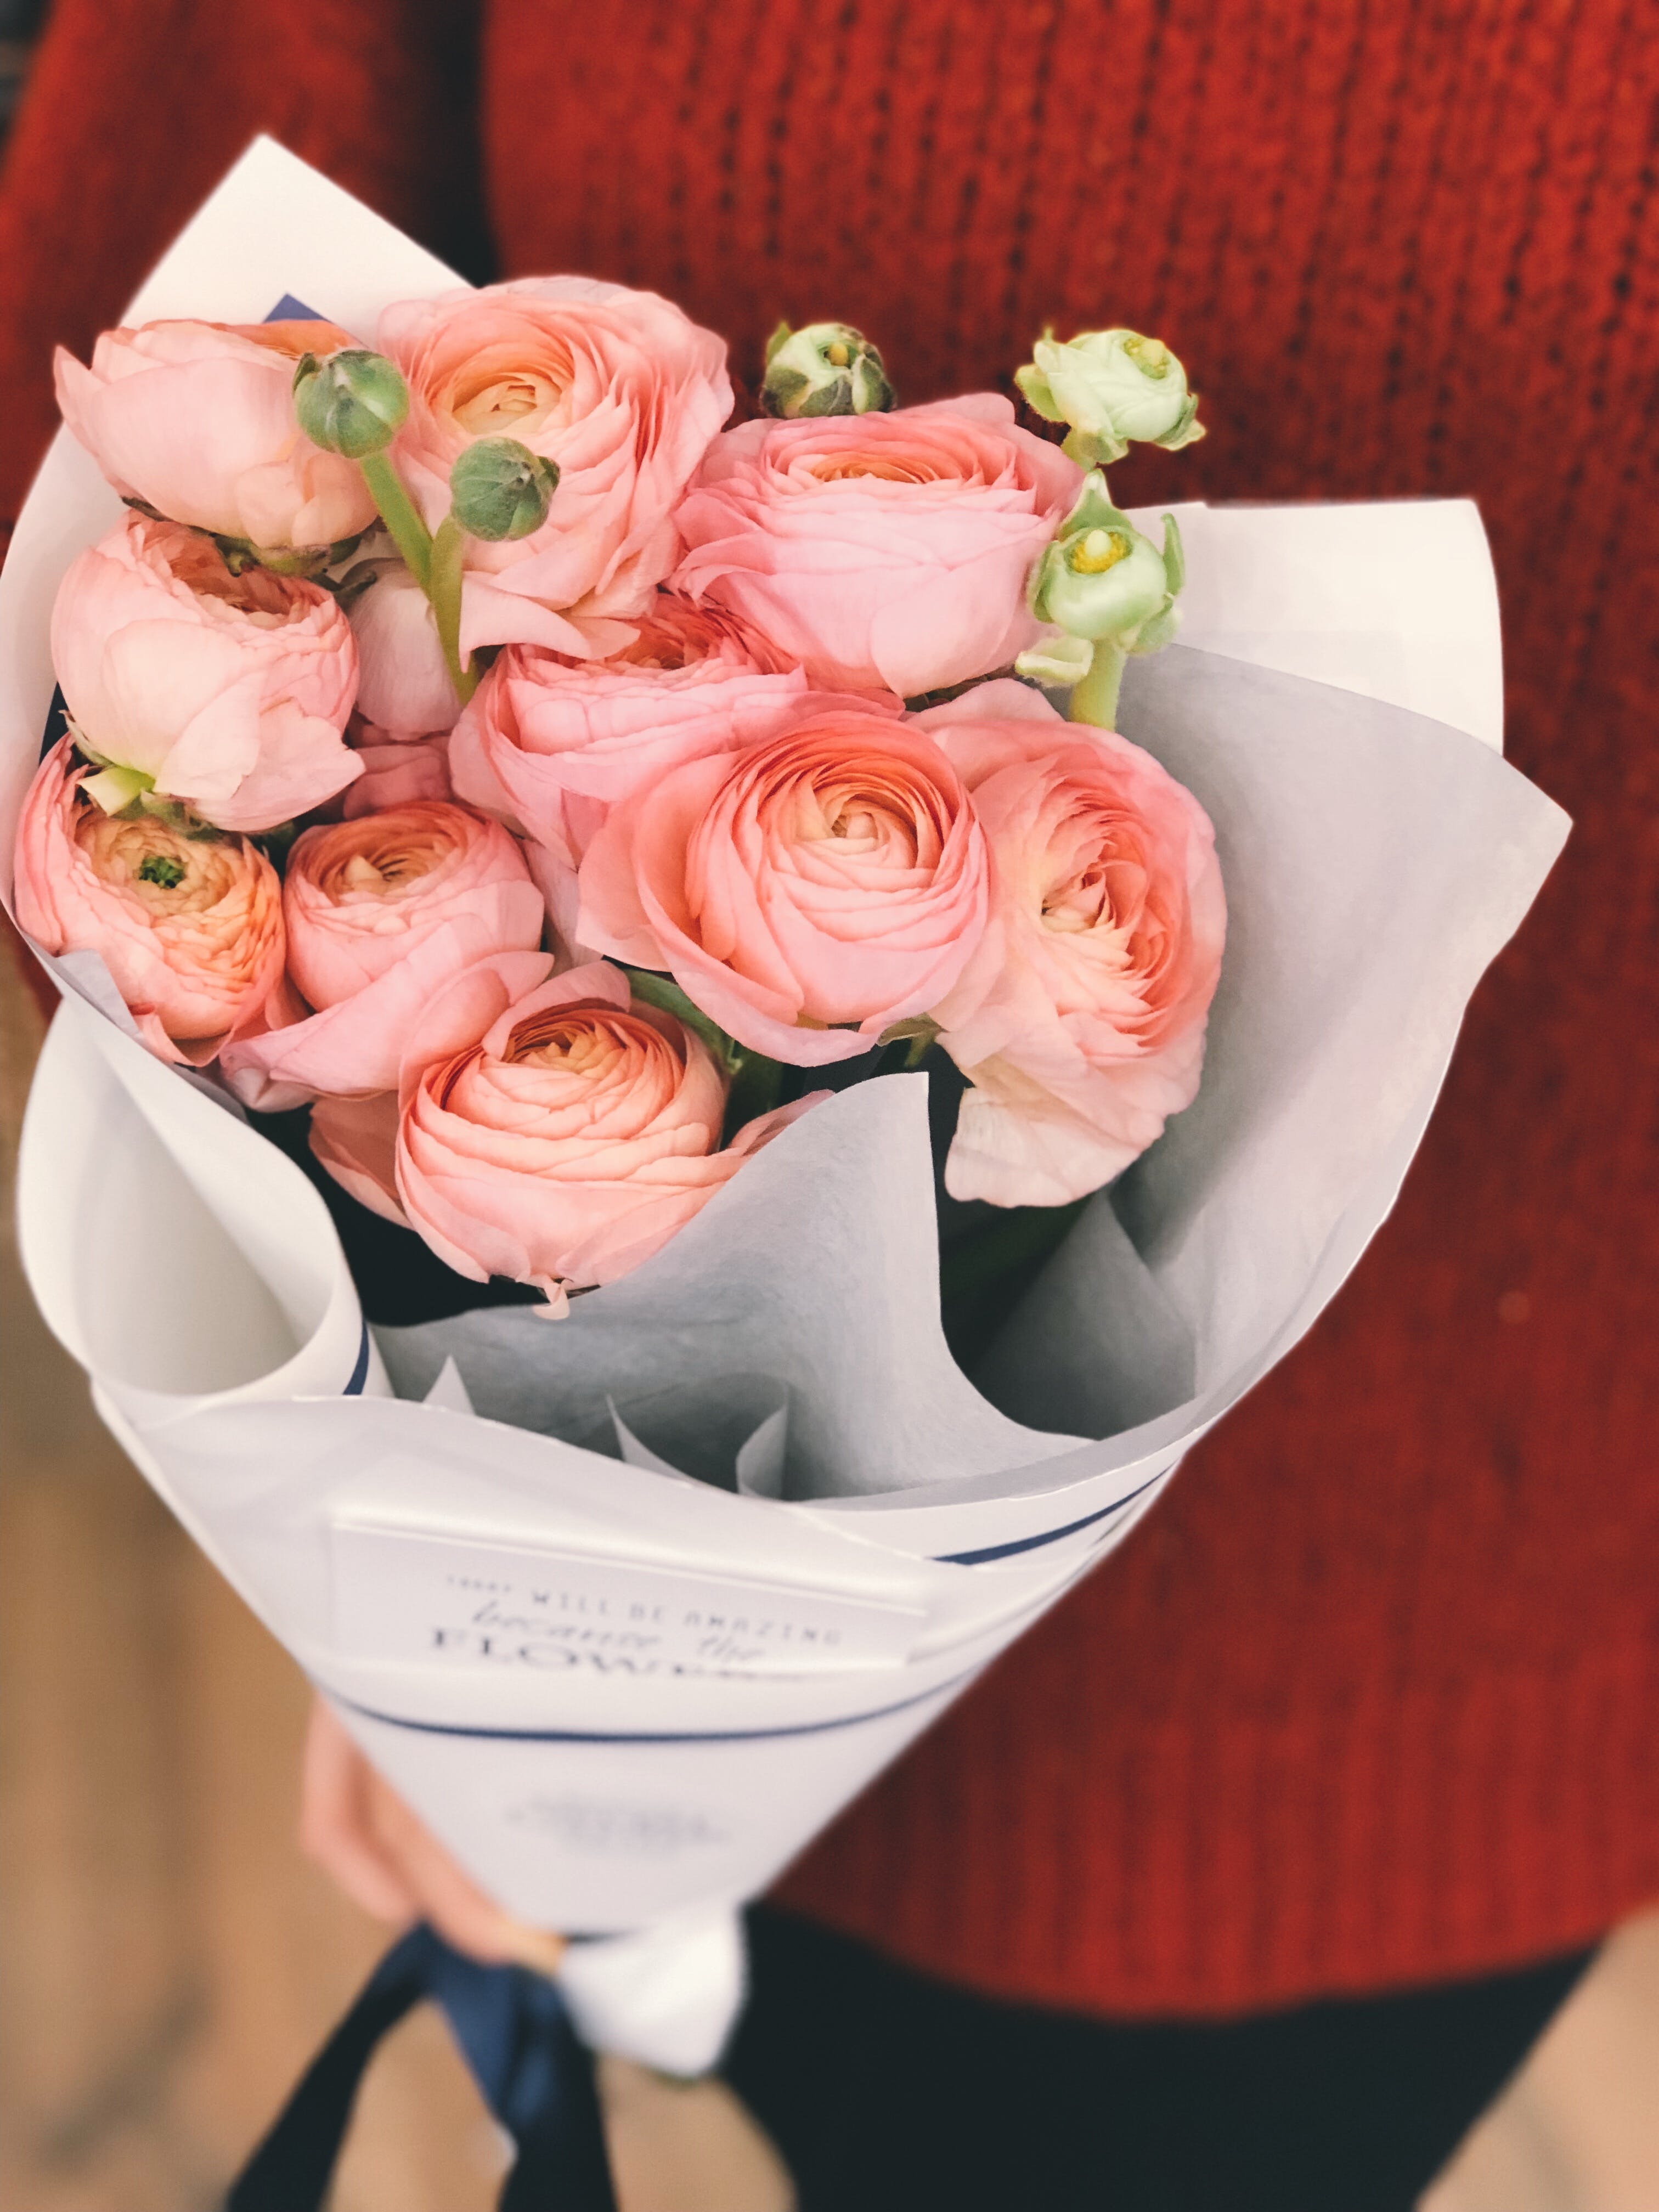 Person Wearing Red Sweater and Black Pants Holding Bouquet of Pink Flowers